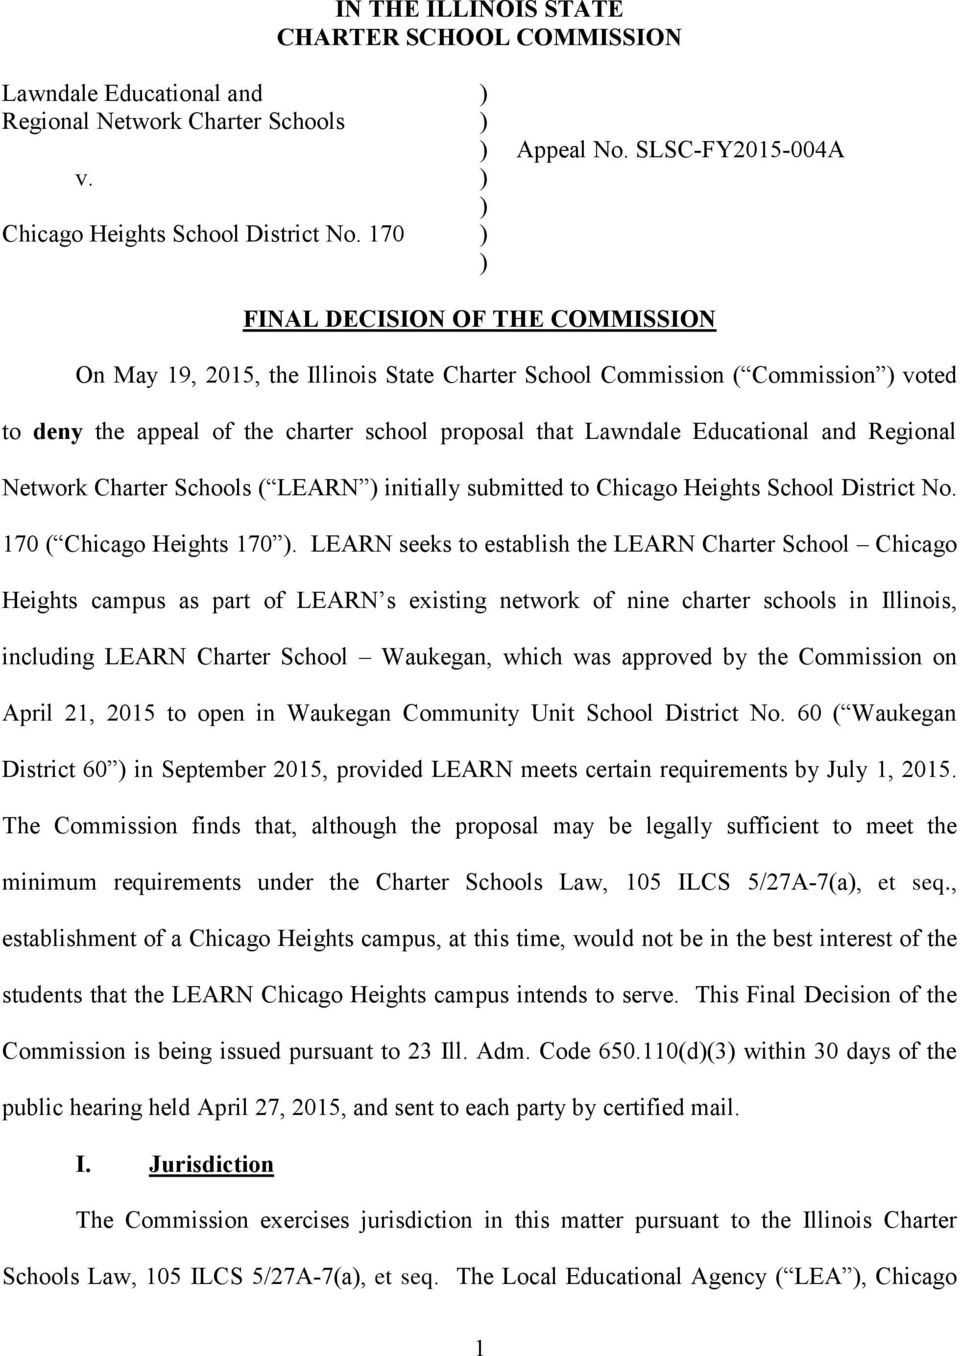 and Regional Network Charter Schools ( LEARN ) initially submitted to Chicago Heights School District No. 170 ( Chicago Heights 170 ).